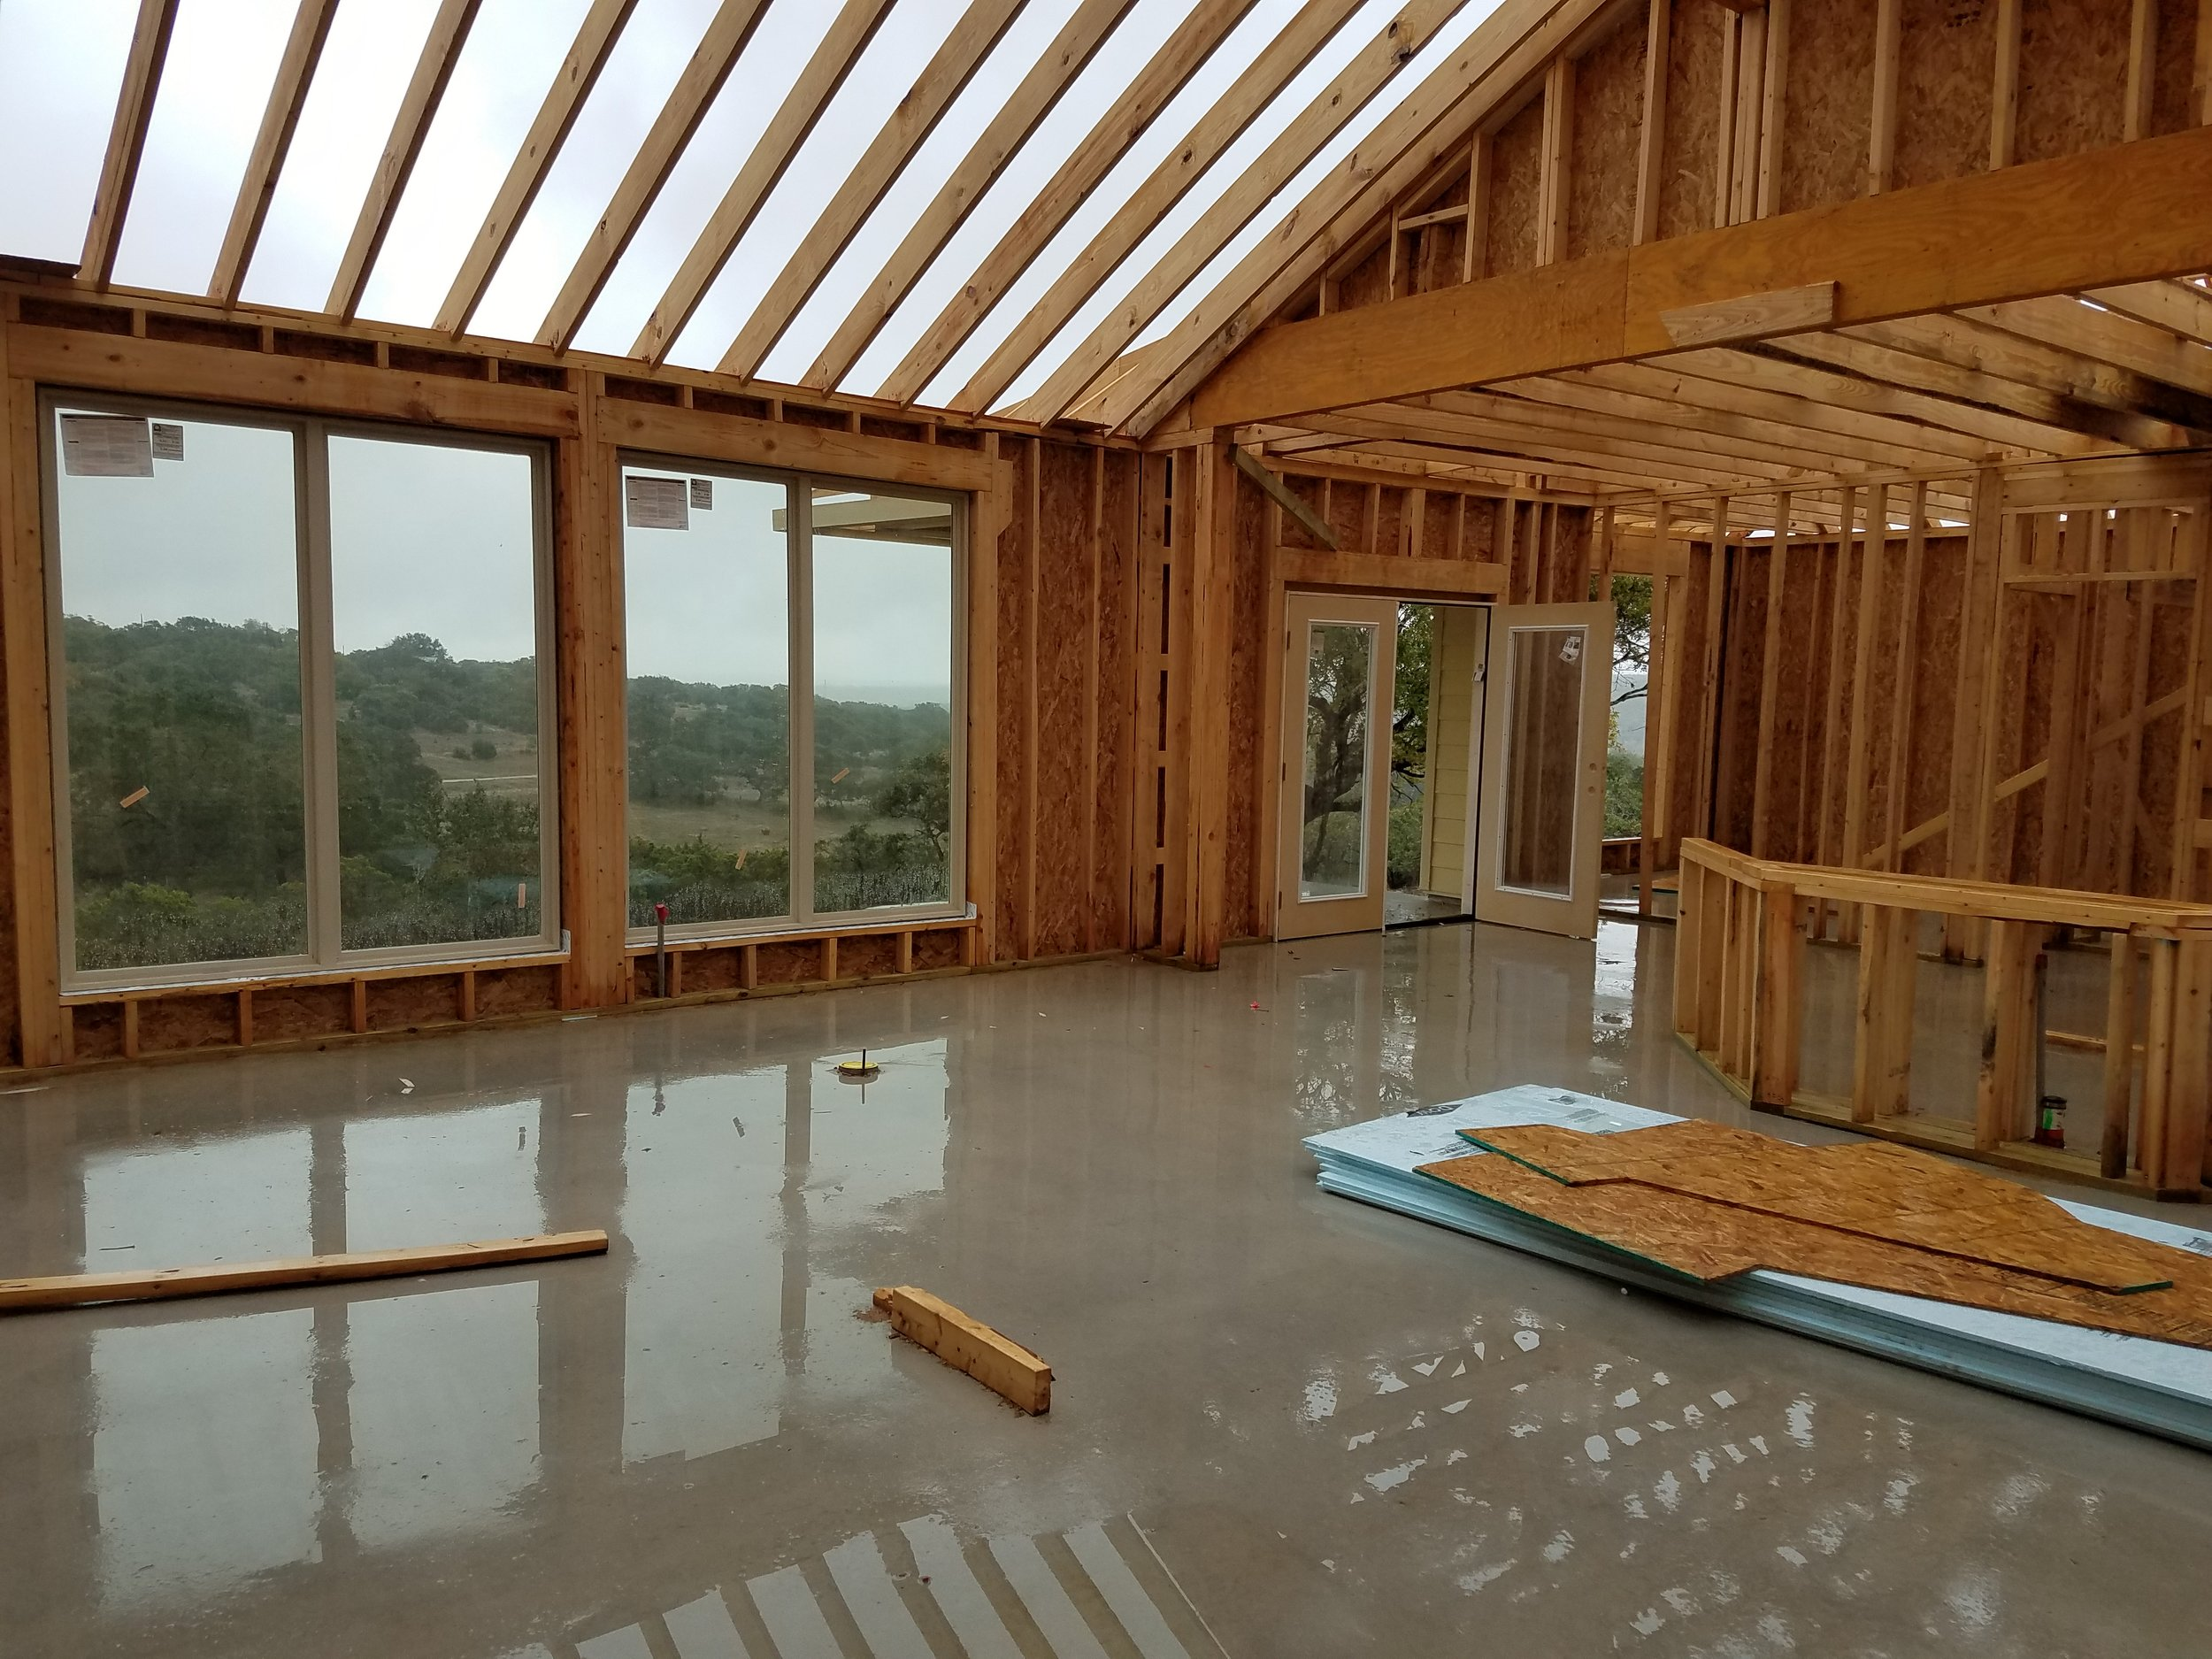 framing stage of home construction no roof